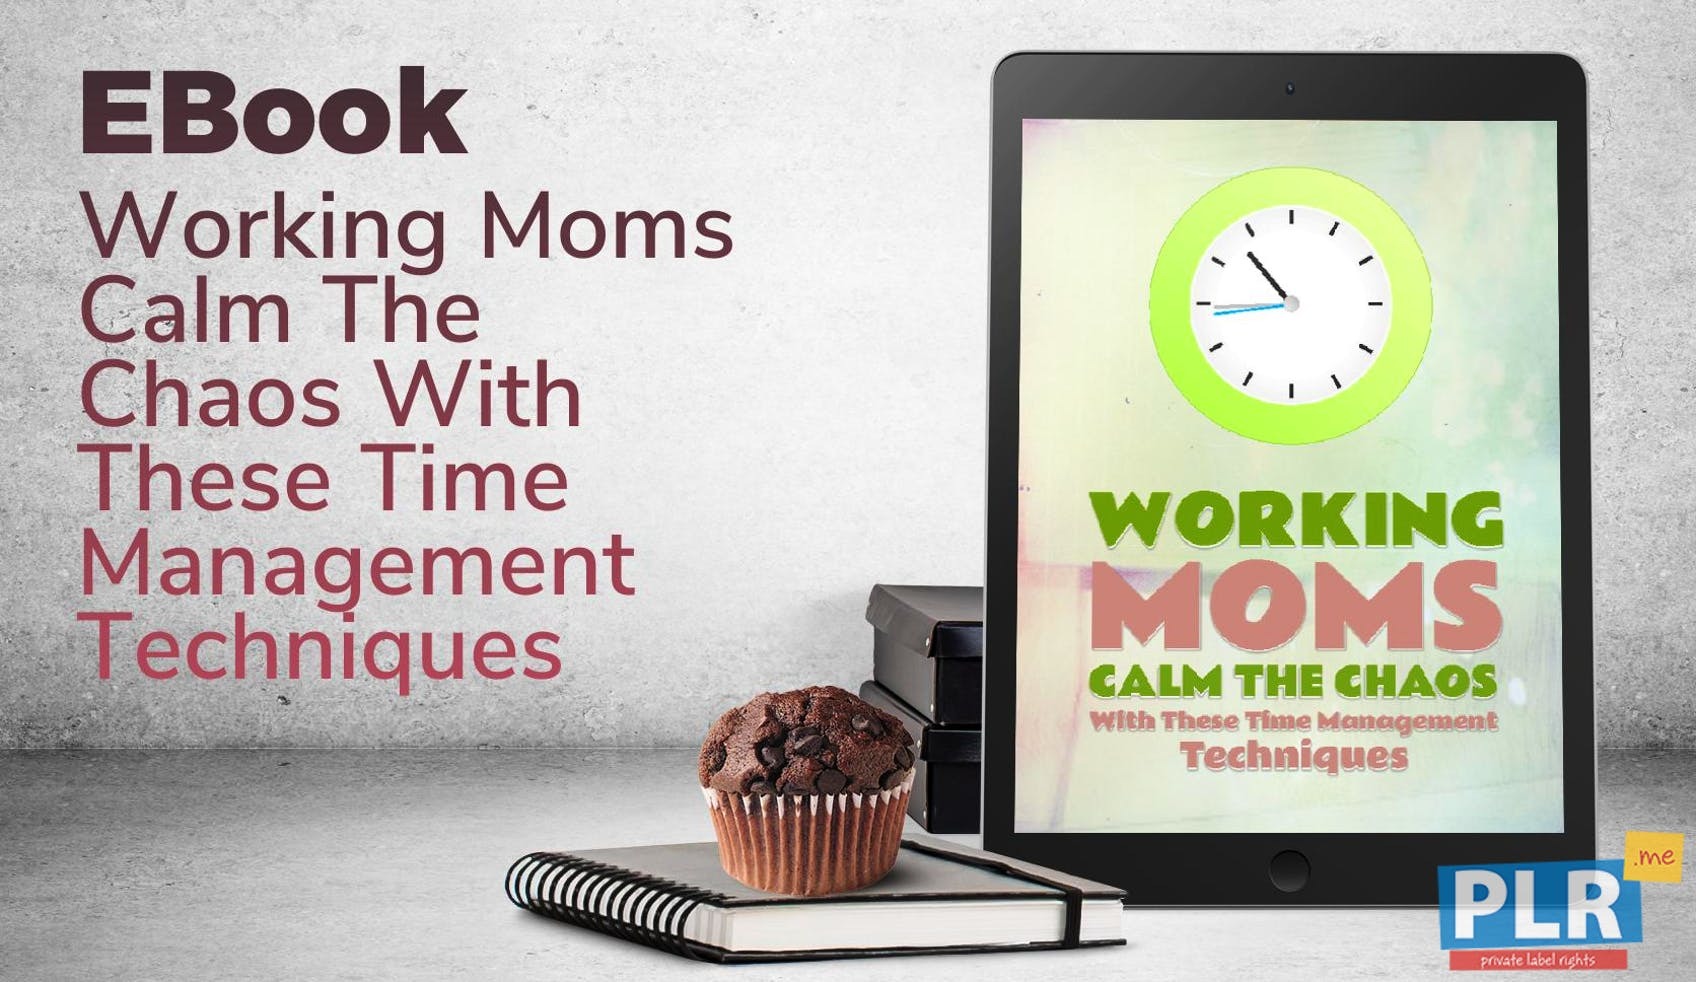 Working Moms Calm The Chaos With These Time Management Techniques